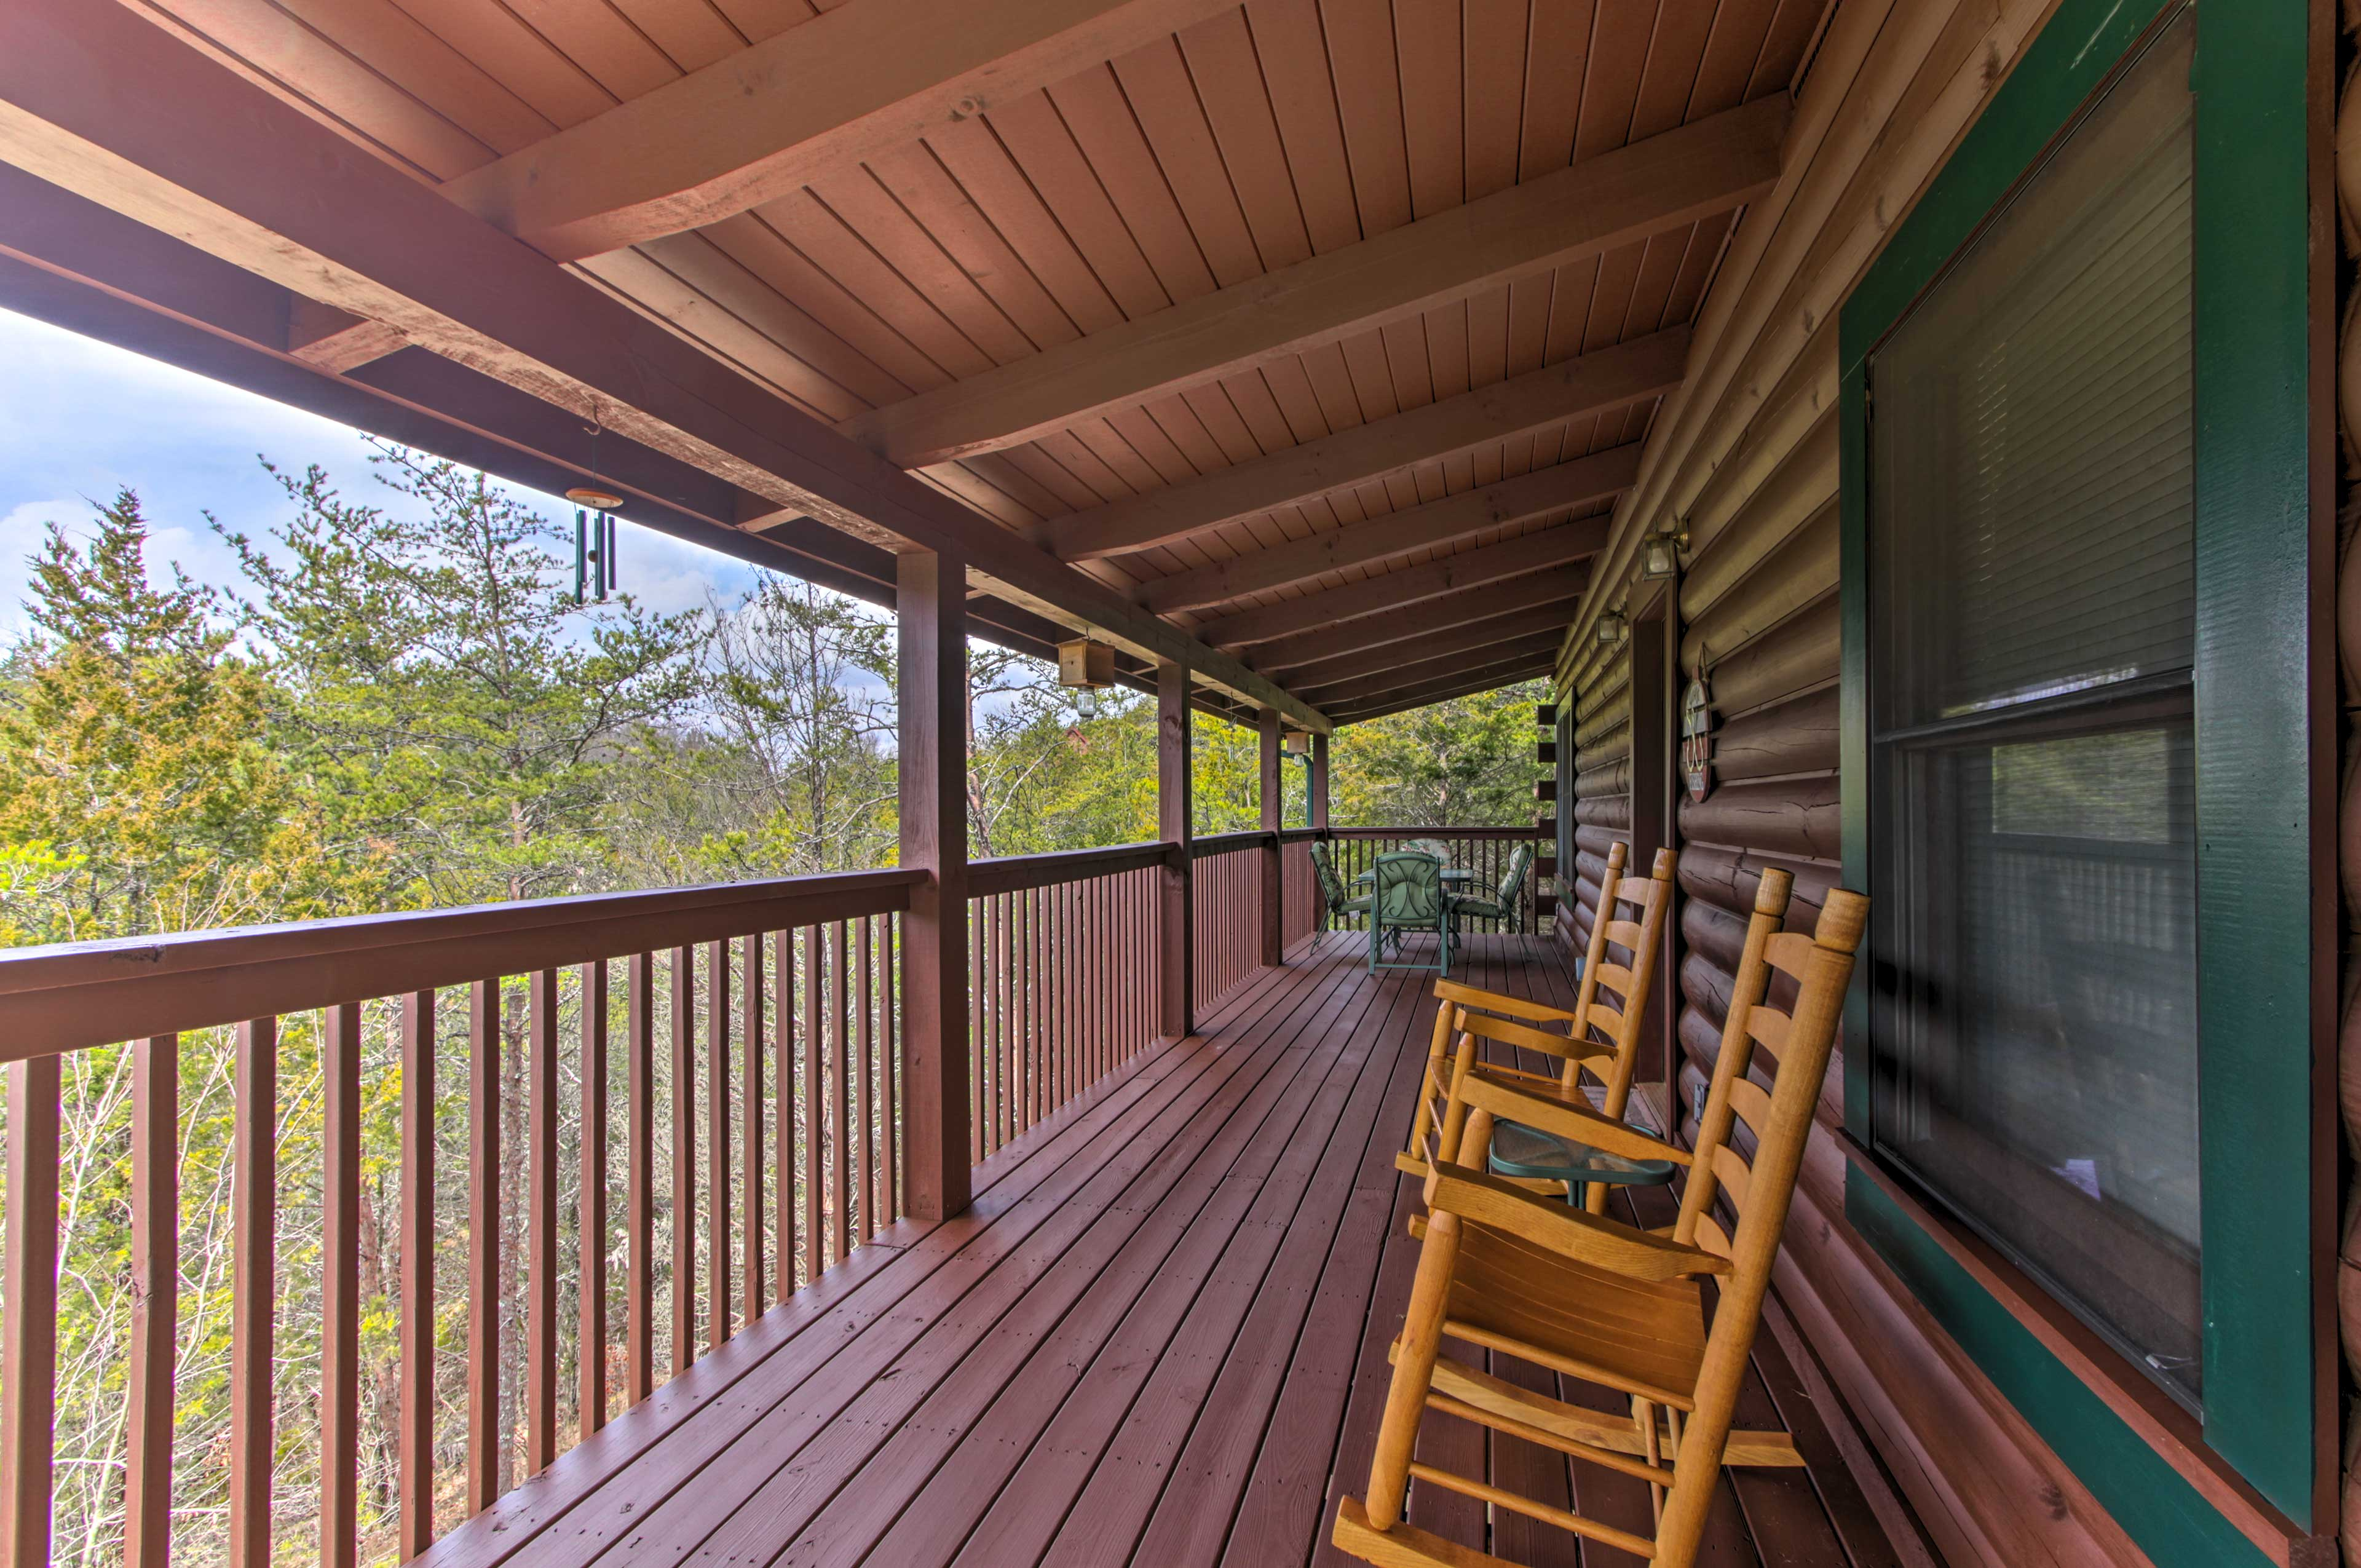 Sunshine or rain, you can enjoy the covered deck!